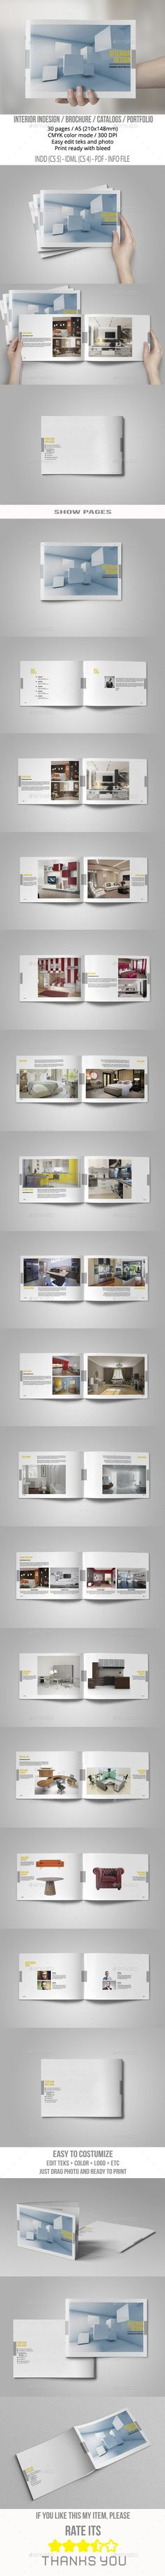 A5 Catalogs Interior